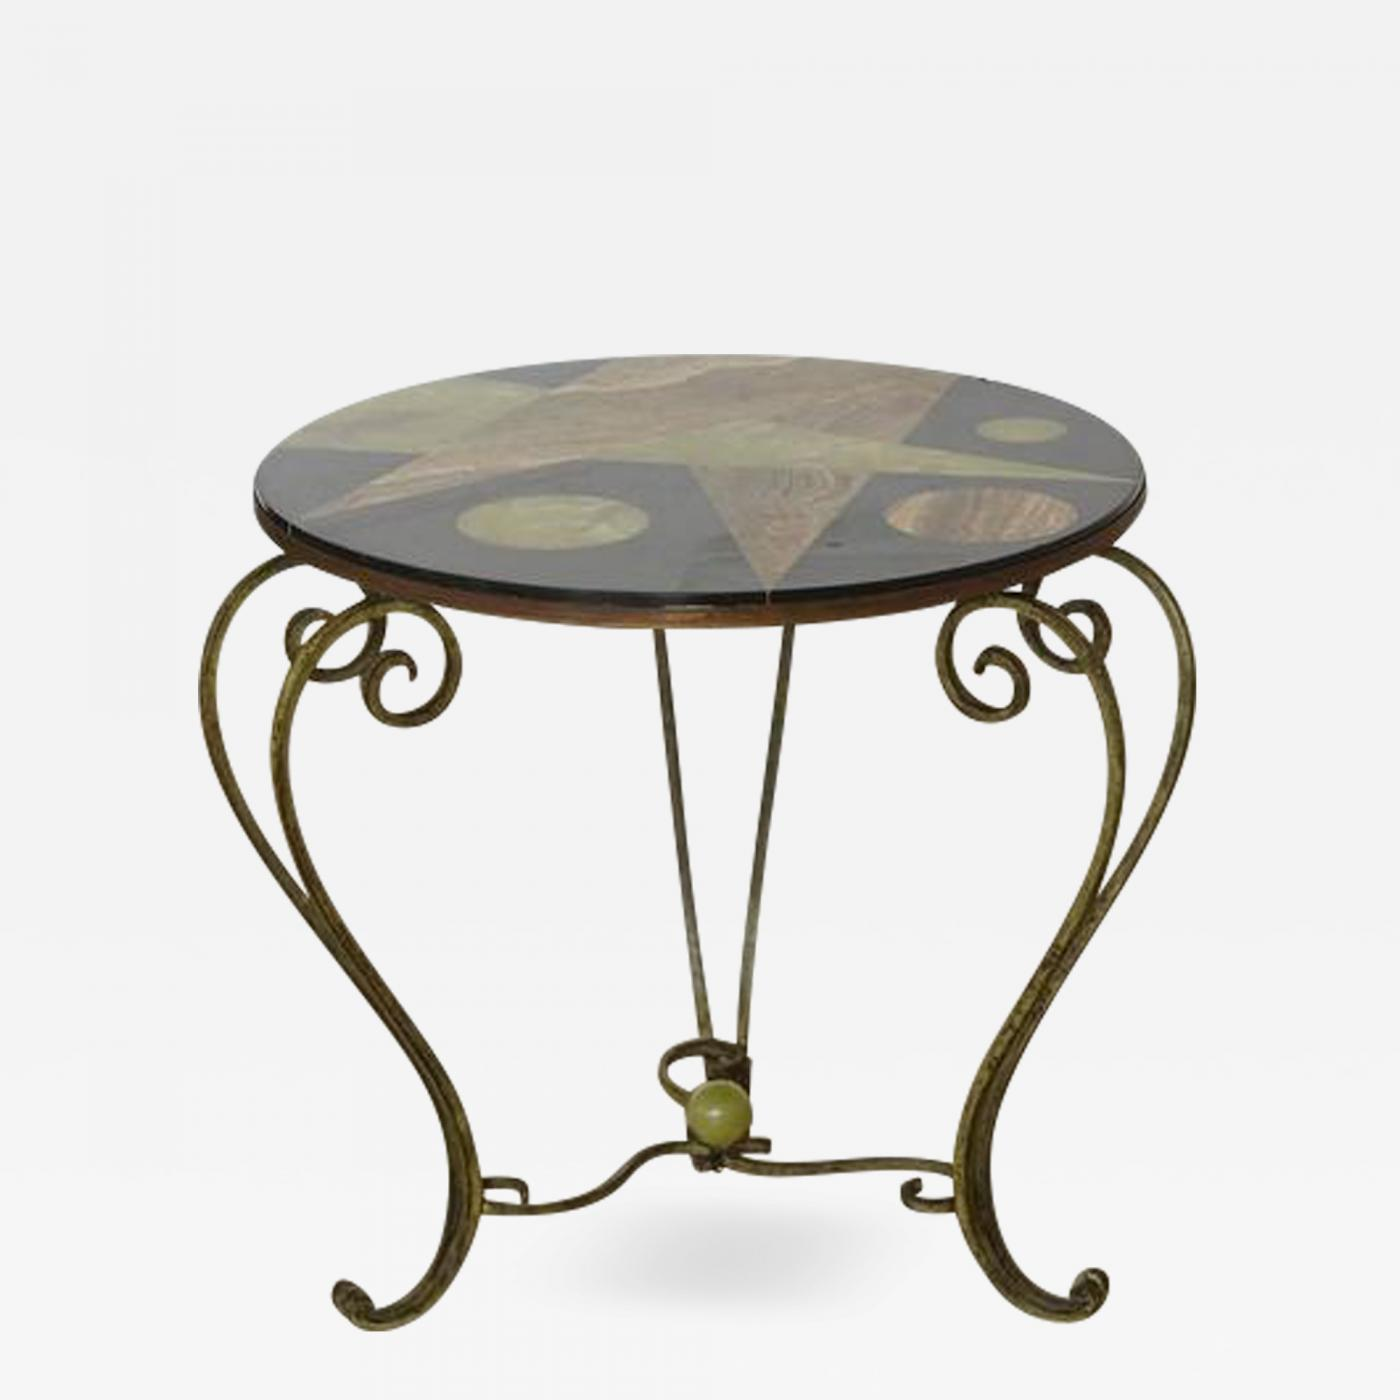 Genial Listings / Furniture / Tables / Side Tables · Wrought Iron Side Table With  Black ...